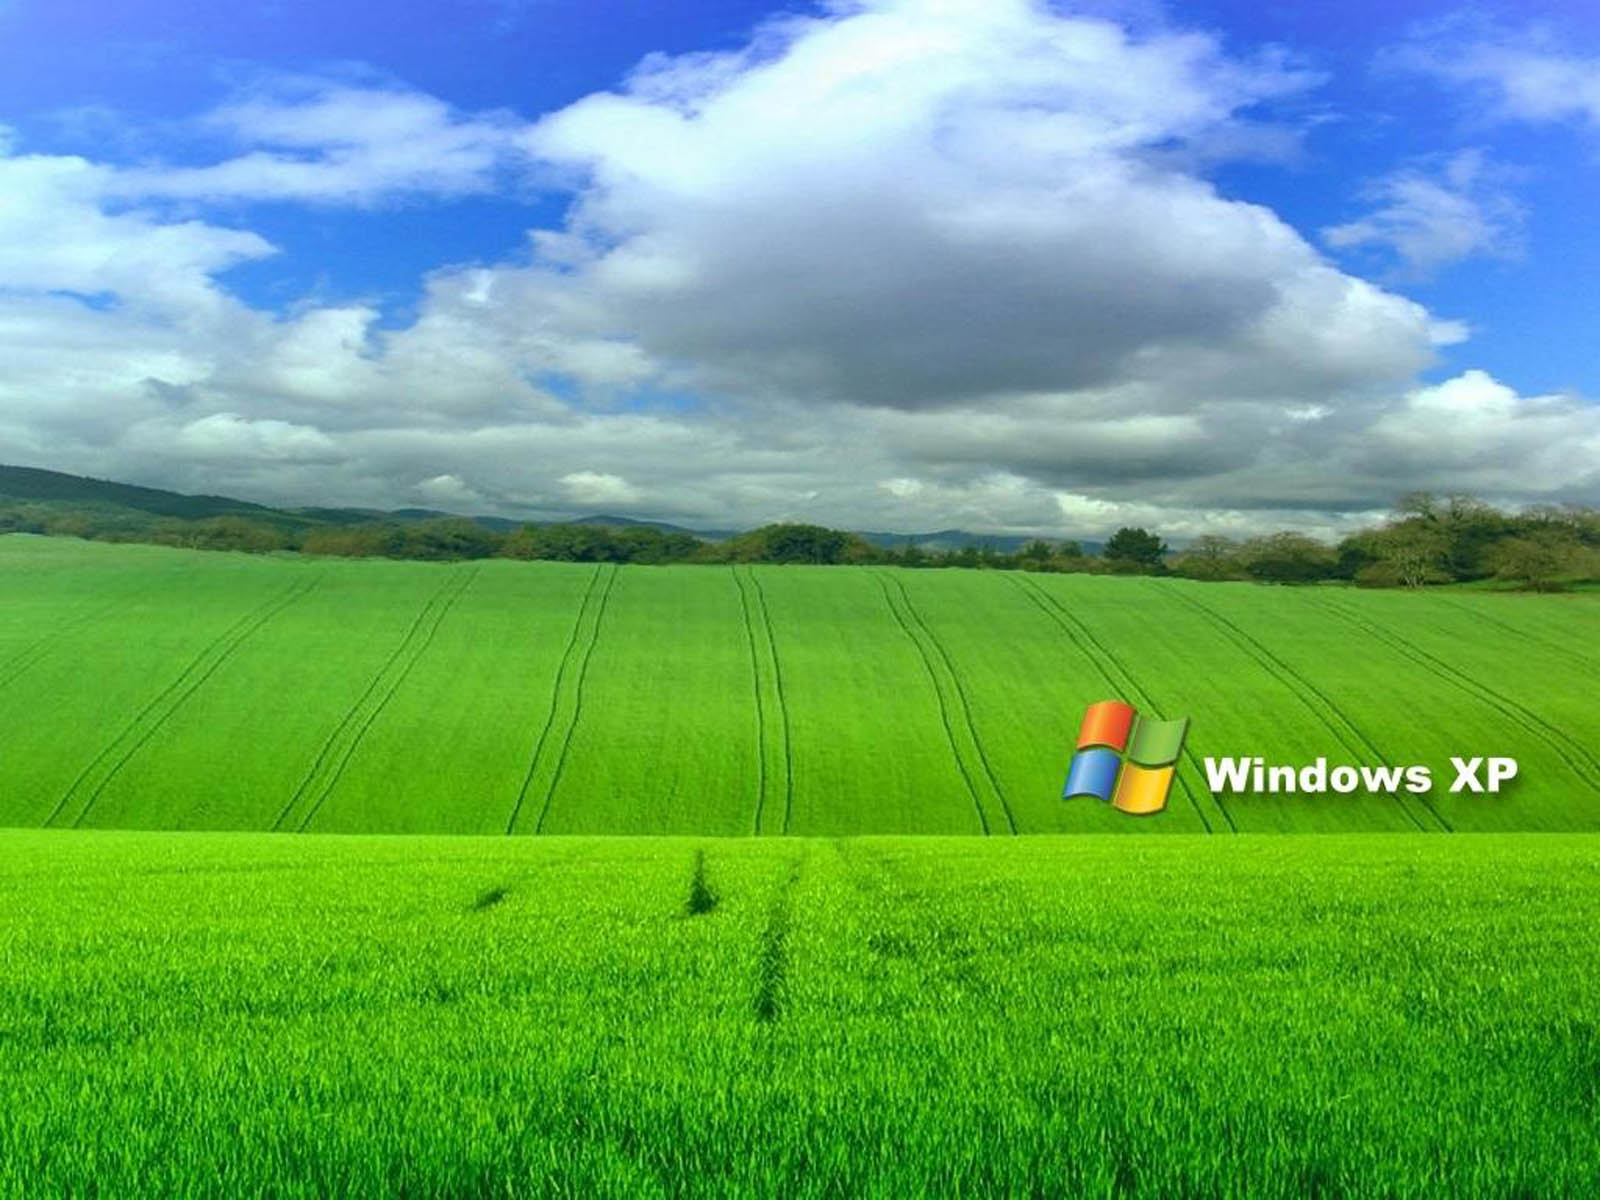 wallpapers Windows XP Desktop Wallpapers 1600x1200